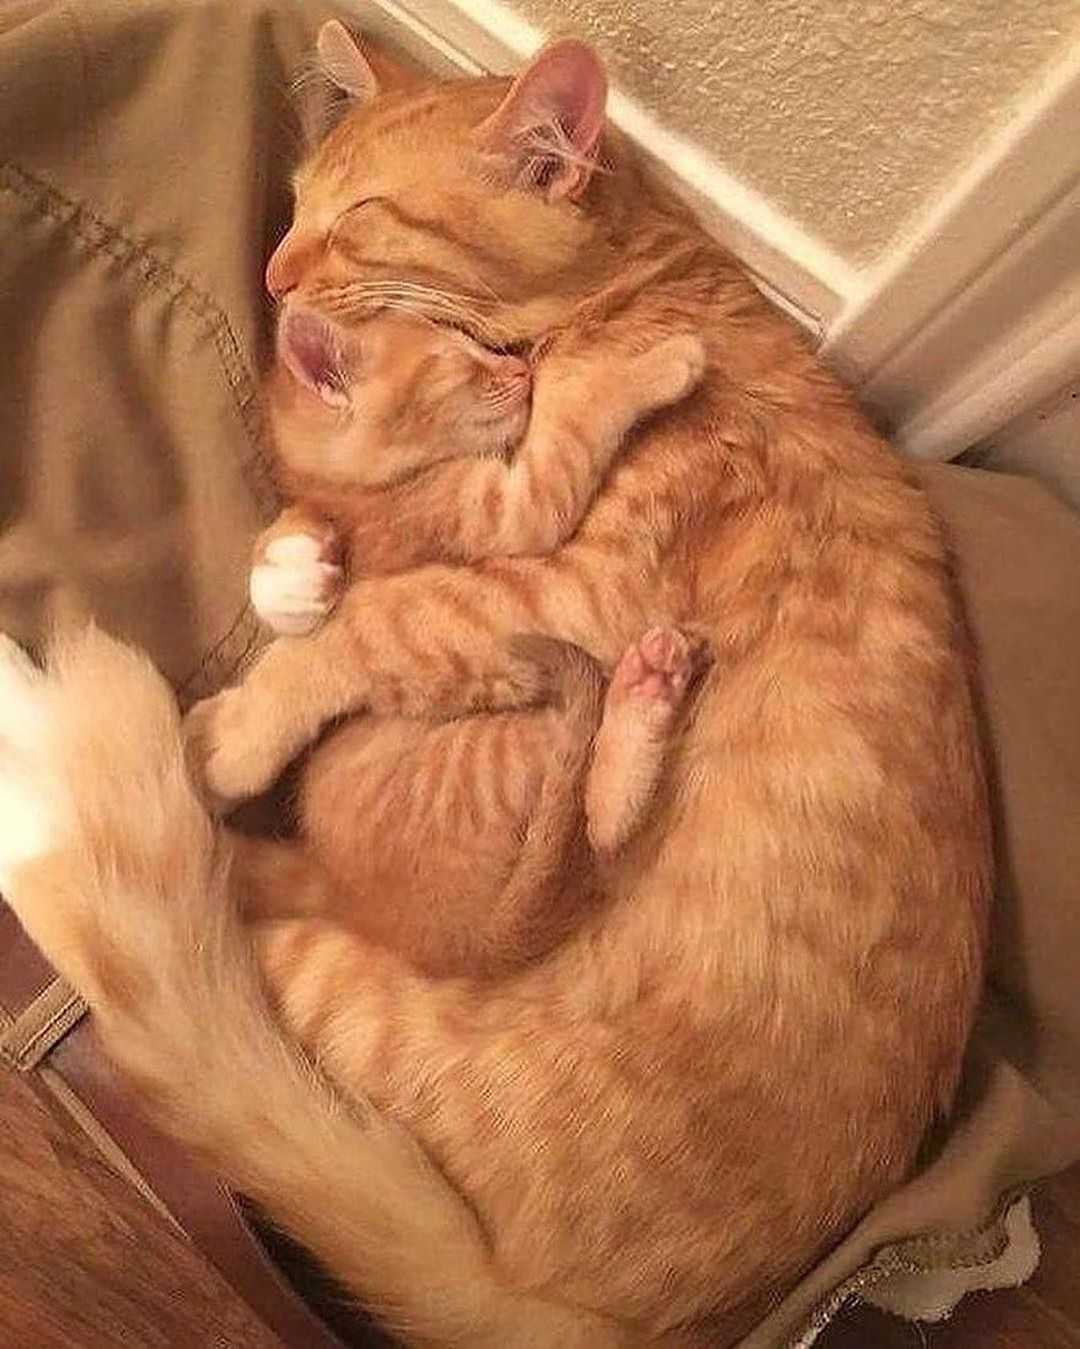 Cute Cats Of Instagram On Instagram Mom And Her Baby Kitty Cats Kitten Kittens Kedi Katze Cute Cats And Kittens Cat Sleeping Baby Animals